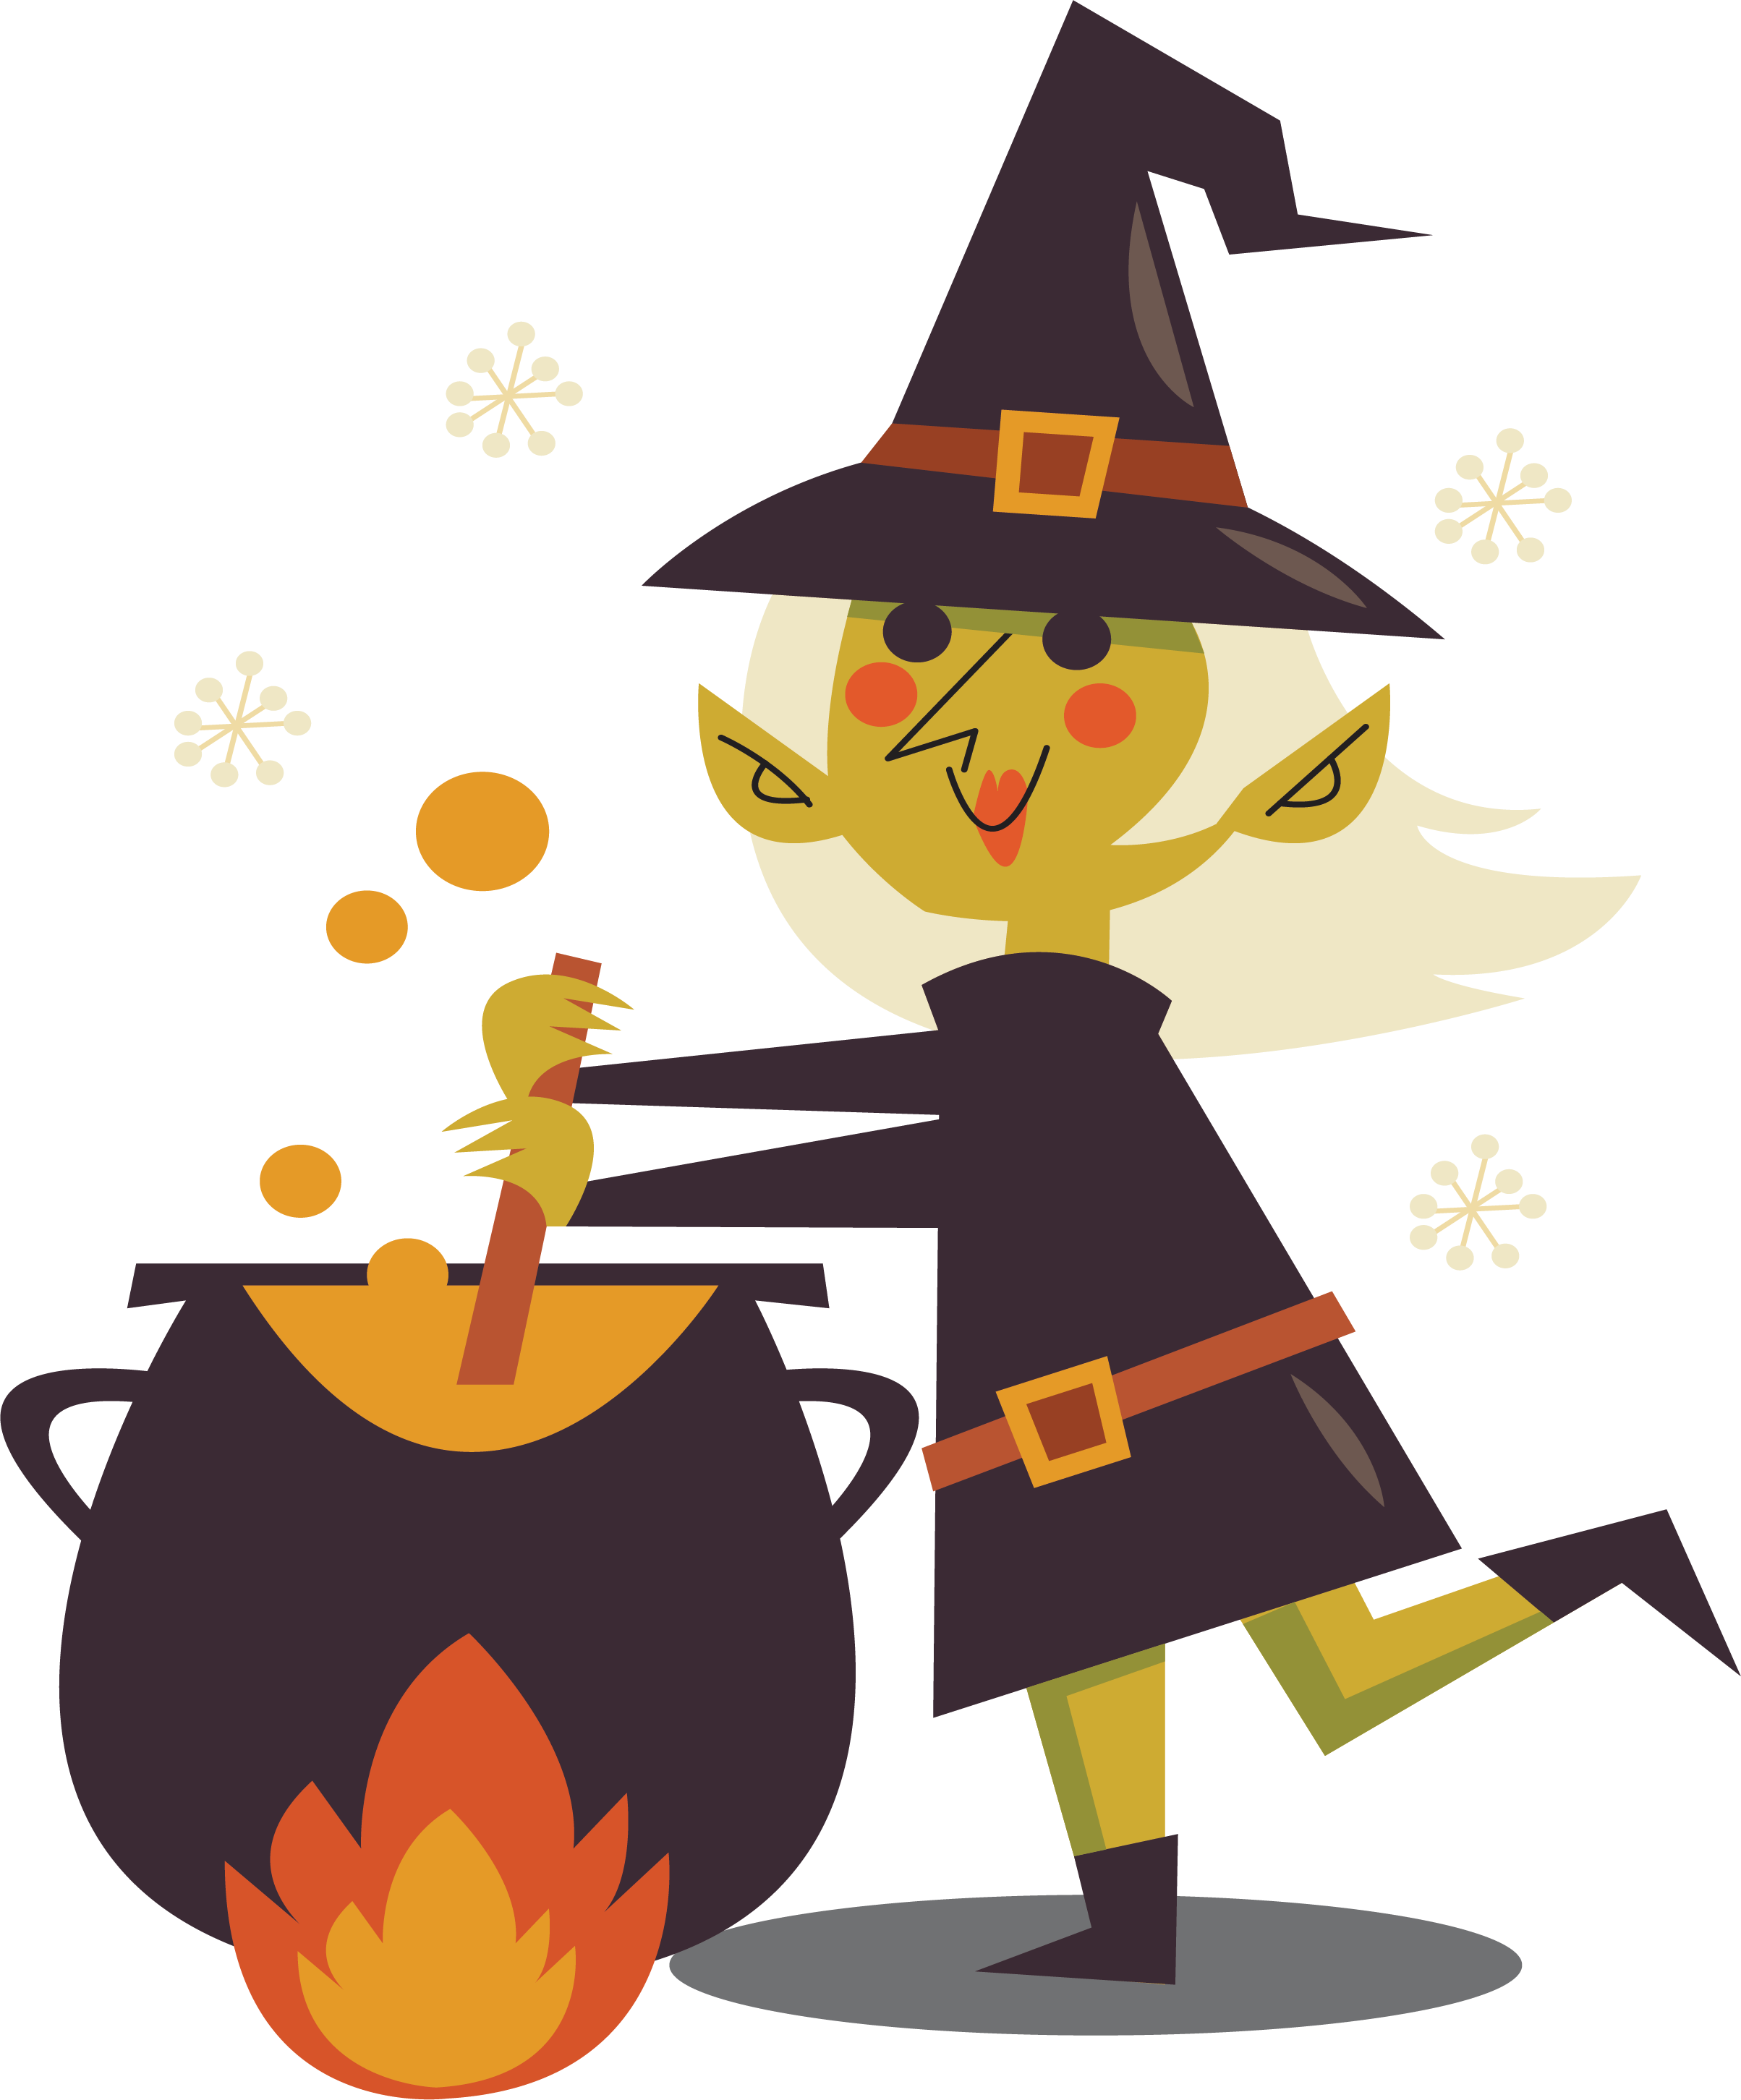 Halloween potion clipart picture library library Witch Potion Clip art - The witch who boils potions 2407*2904 ... picture library library